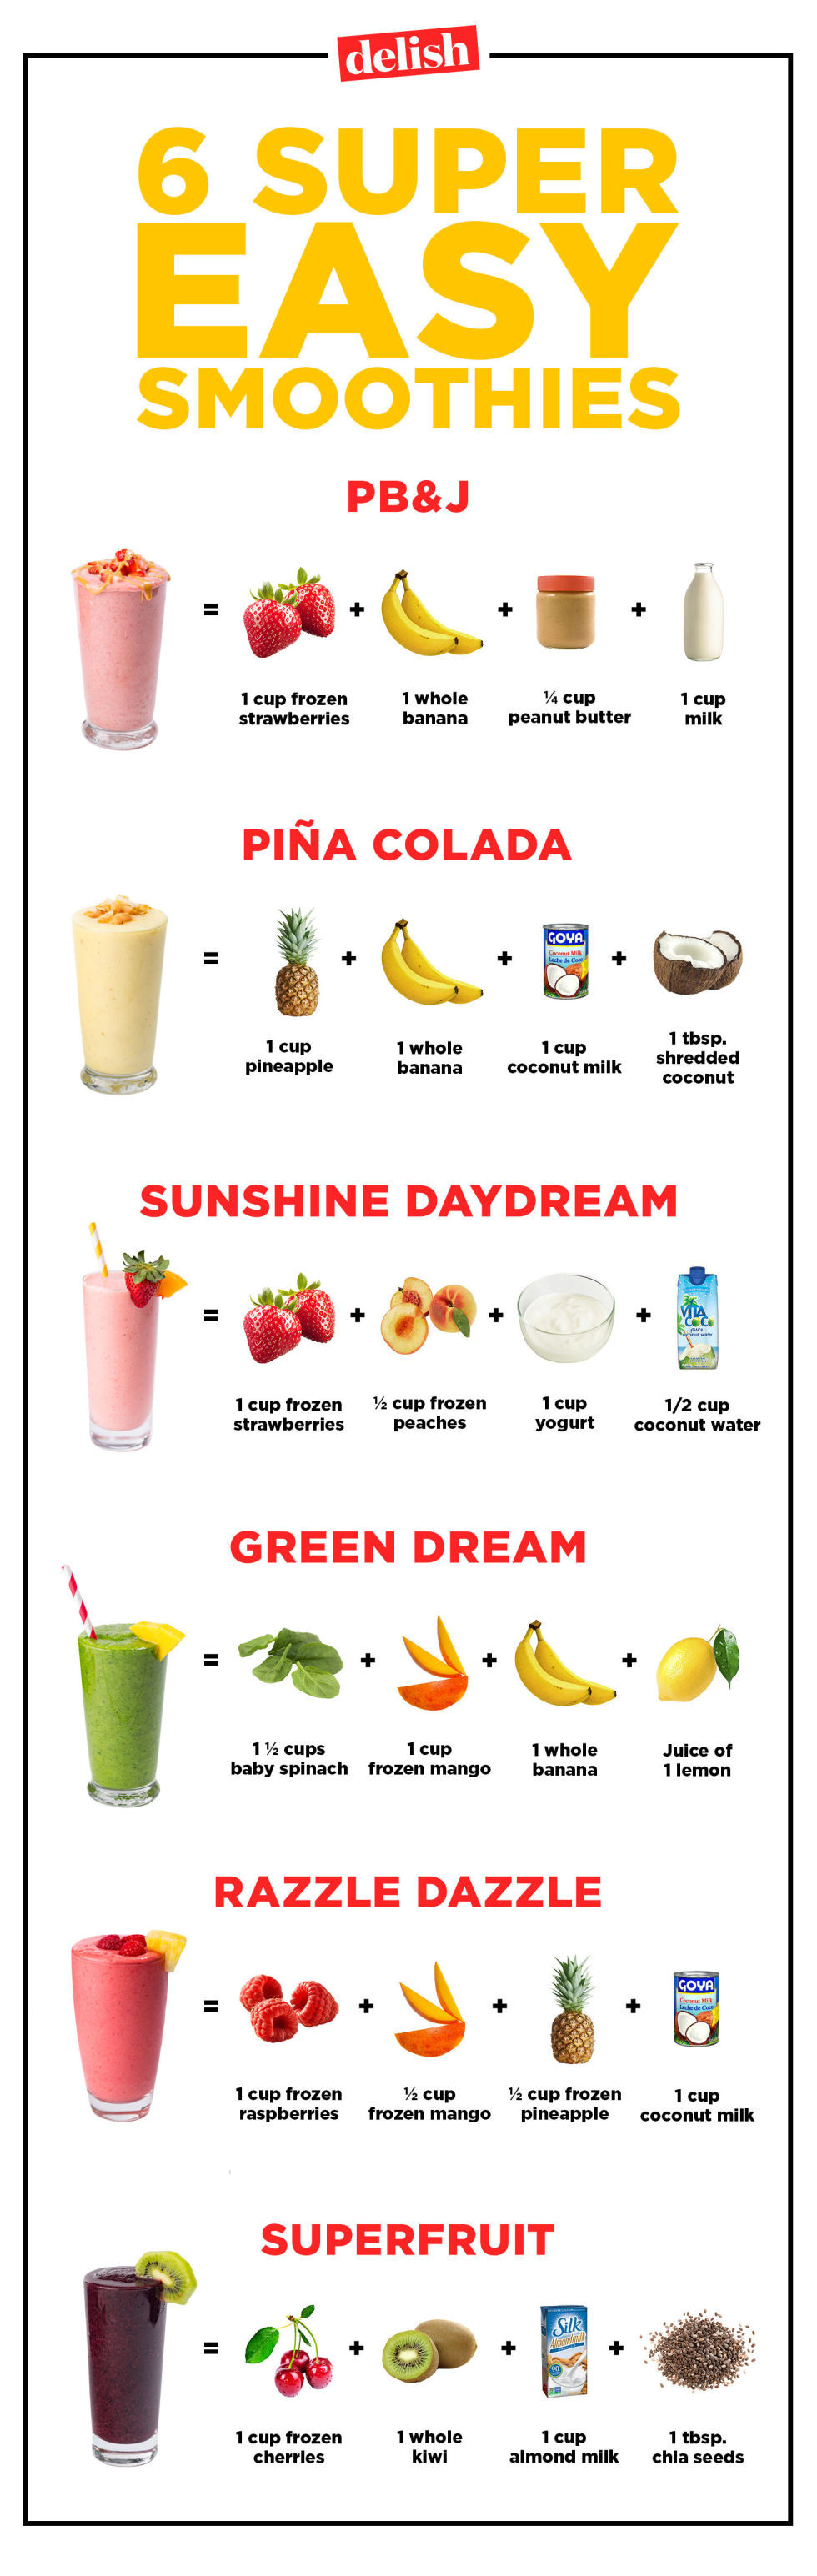 Healthy Easy Smoothie Recipes the 20 Best Ideas for Healthy Fruit Smoothie Recipes